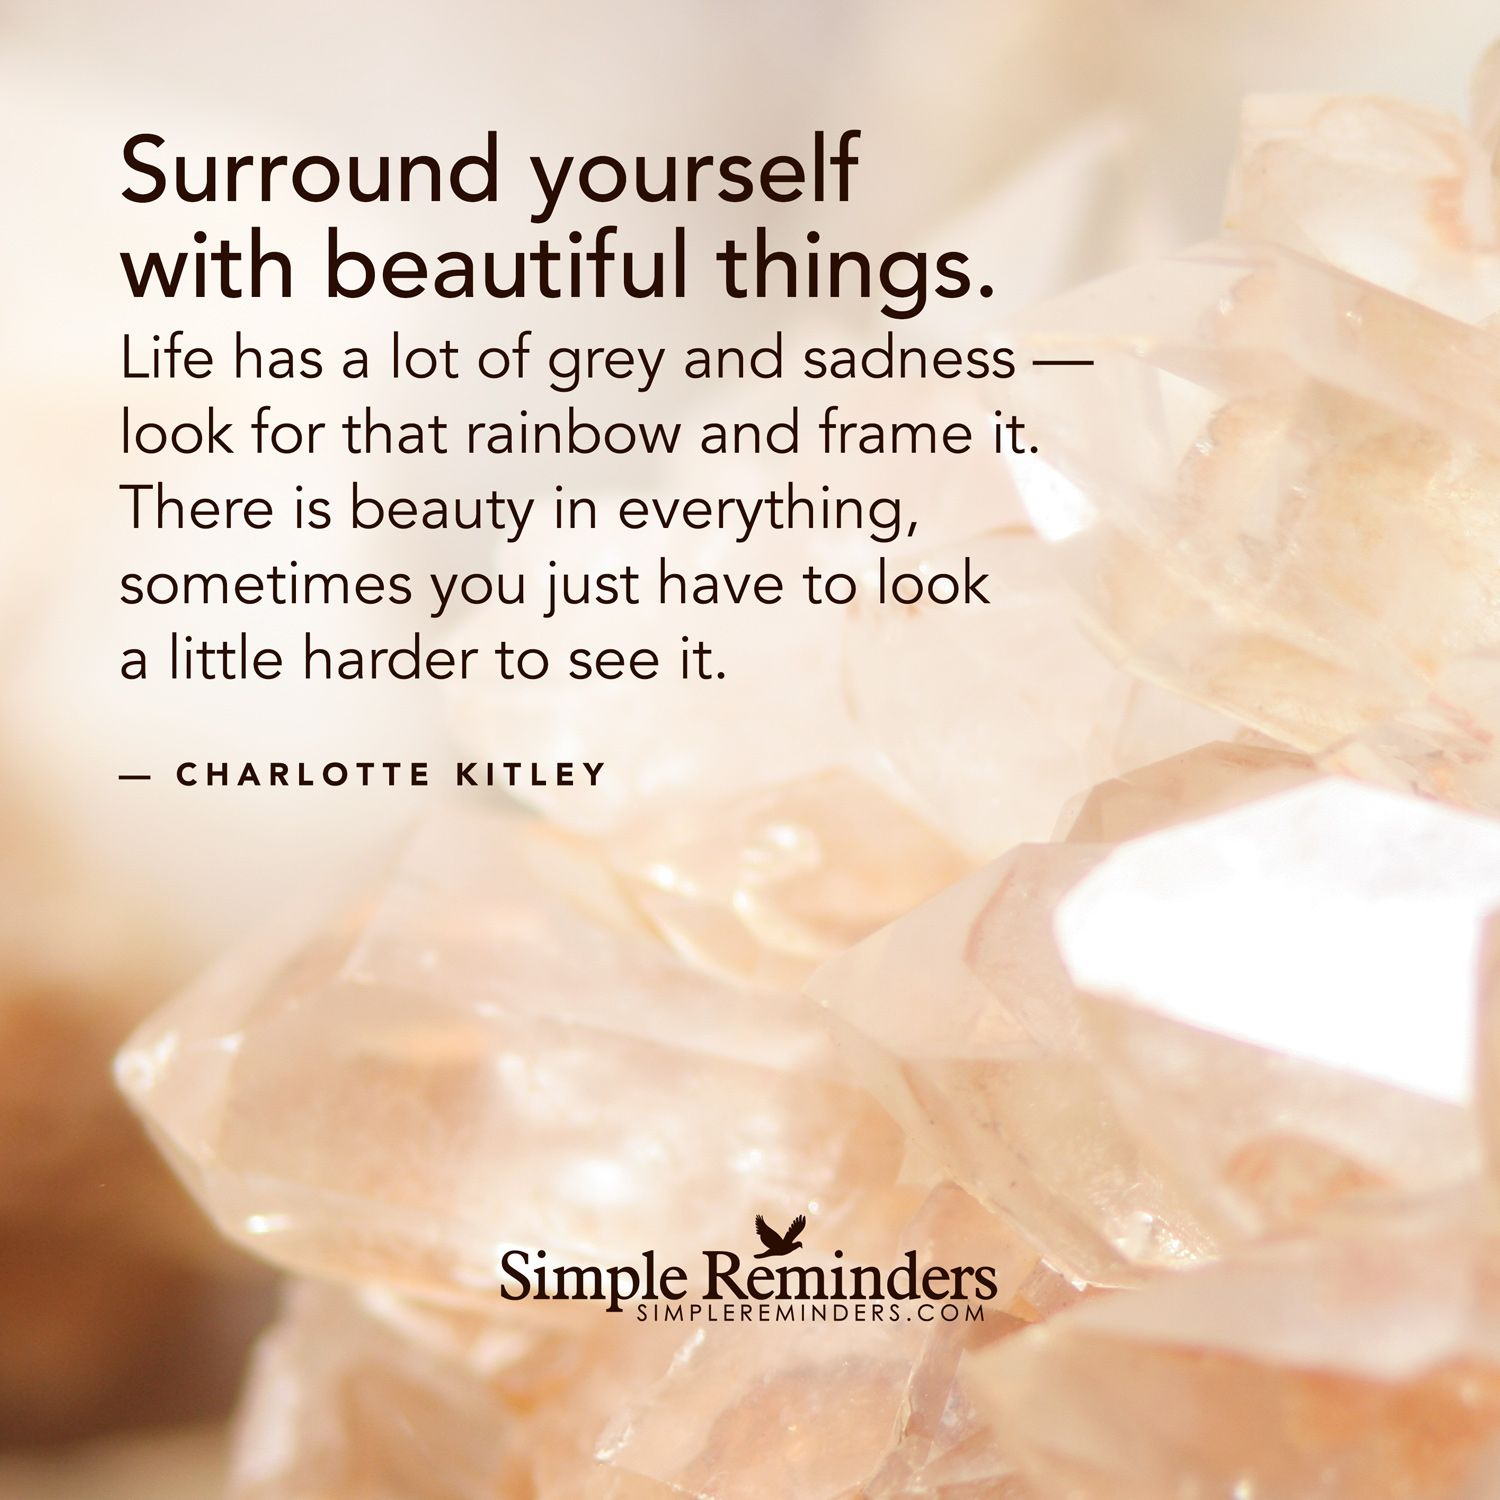 Simple Beauty Quotes And Sayings: Surround Yourself With Beautiful Things. Life Has A Lot Of